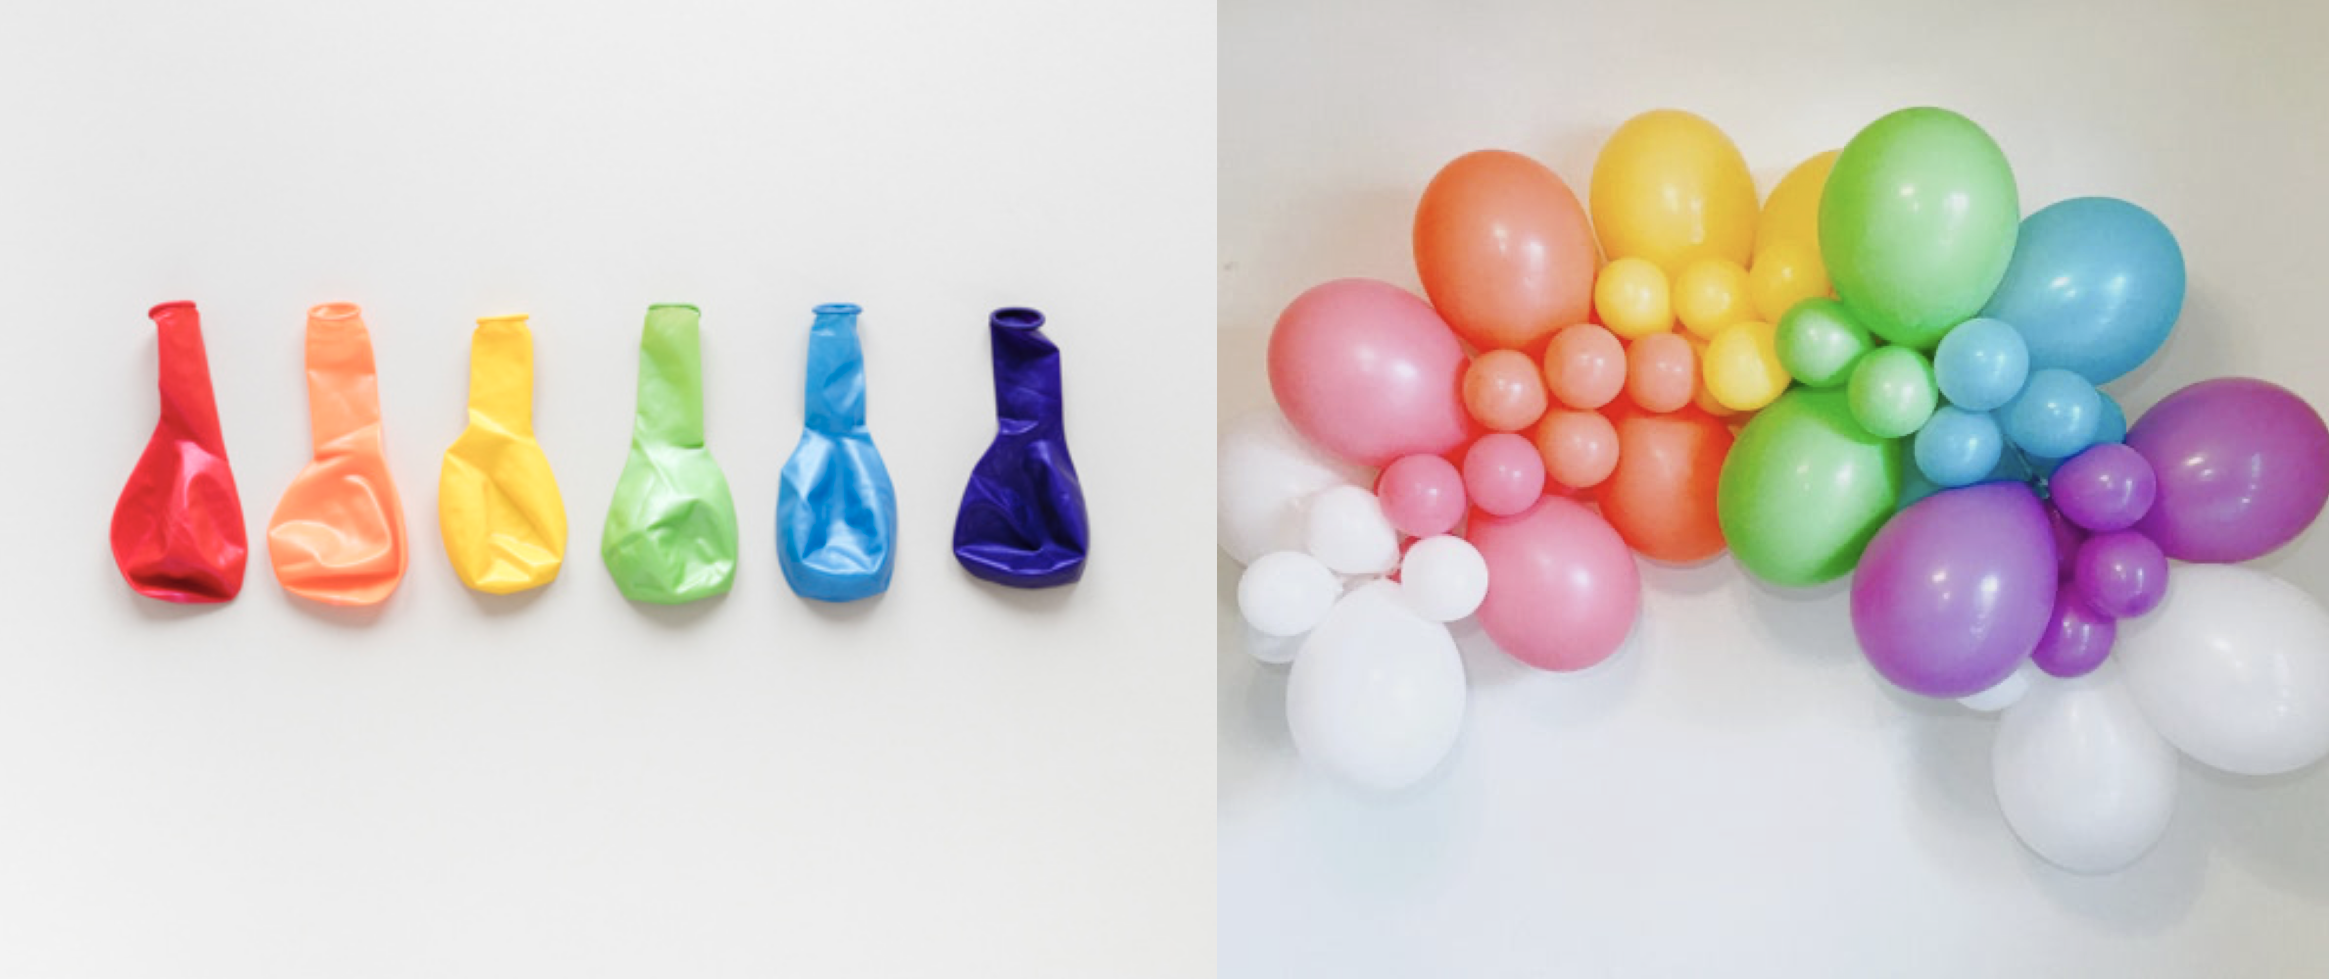 On the left side, an image of six deflated balloons in the colors of a rainbow, from red on the left to indigo on the right. The right side image shows an arch of rainbow balloons blown up. They are less vibrant than the deflated balloons.